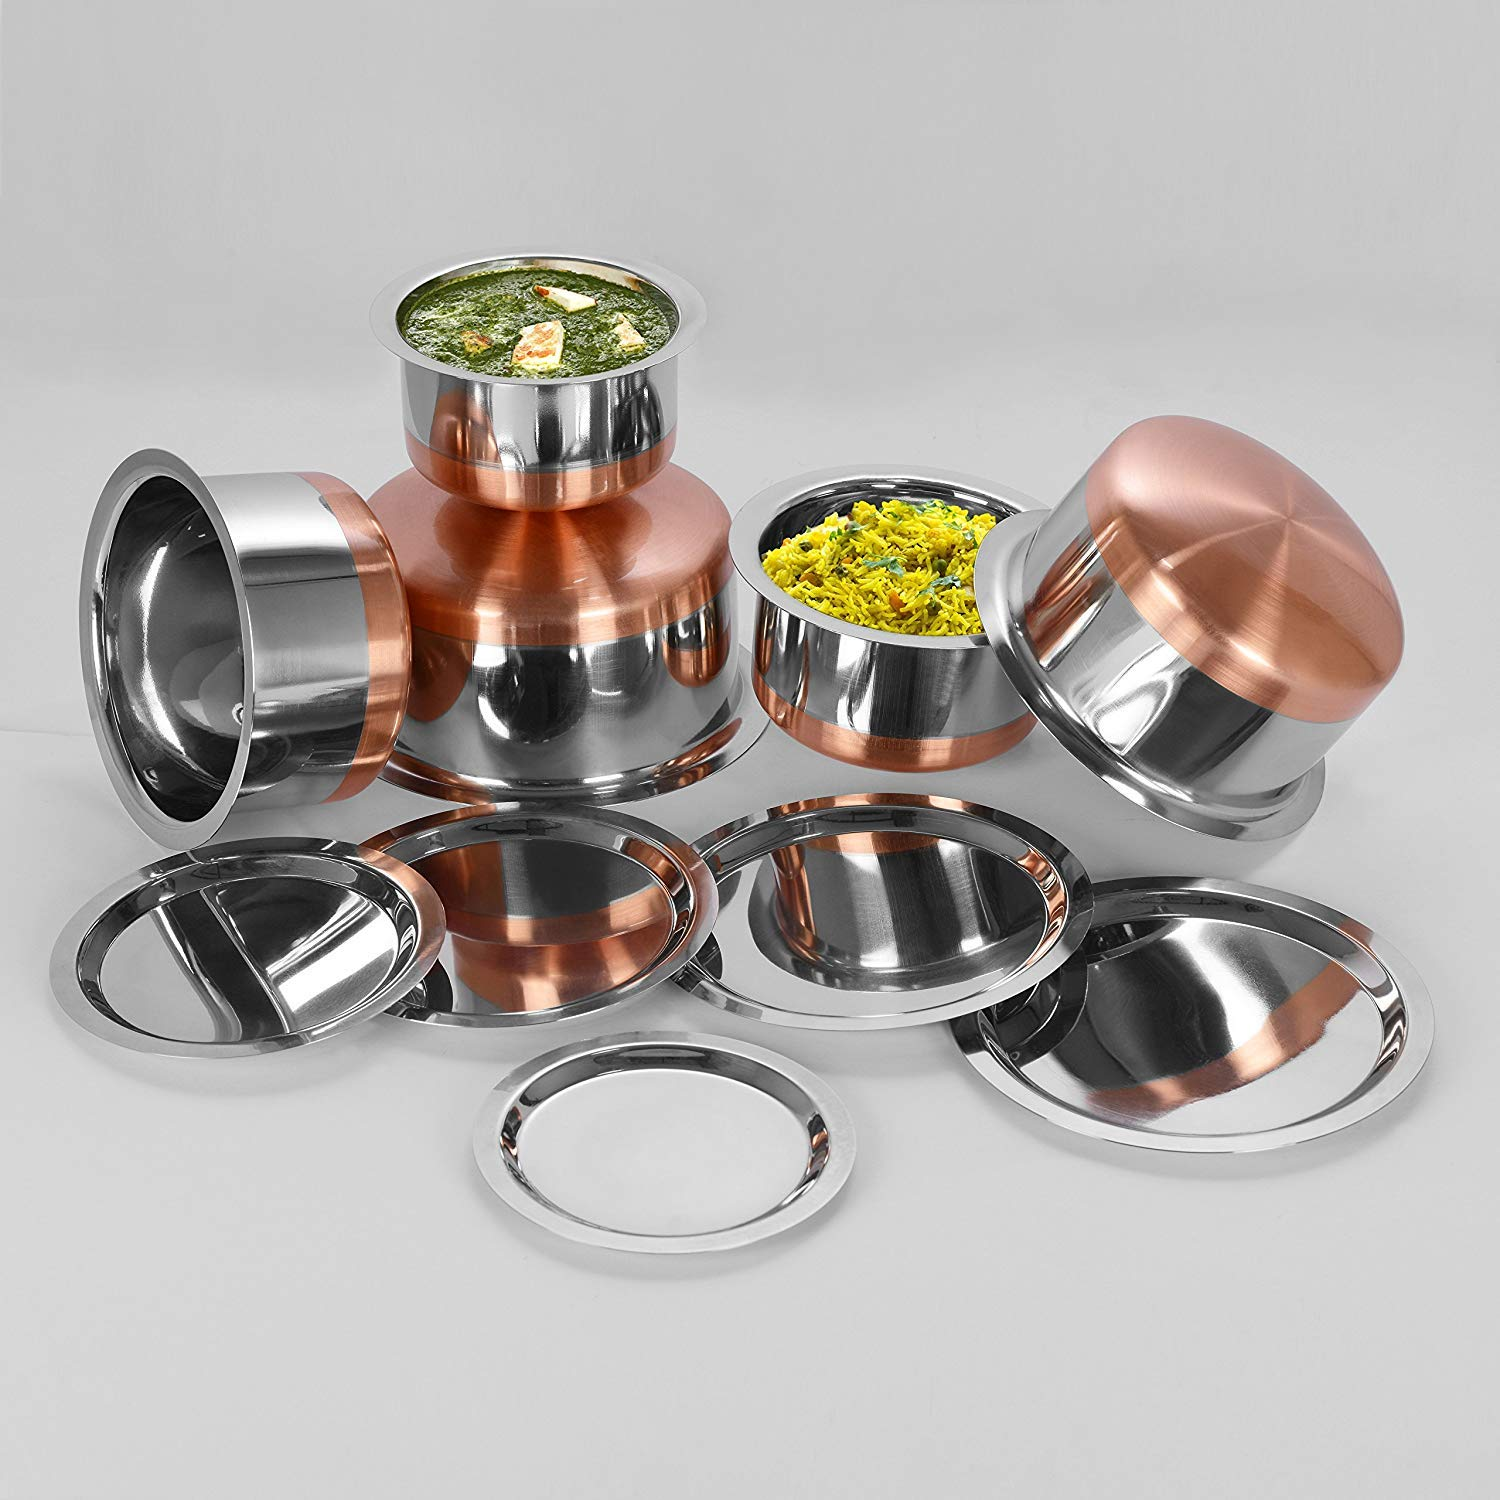 Aristo Stainless Steel best Copper bottom cookware Tope set with Lid